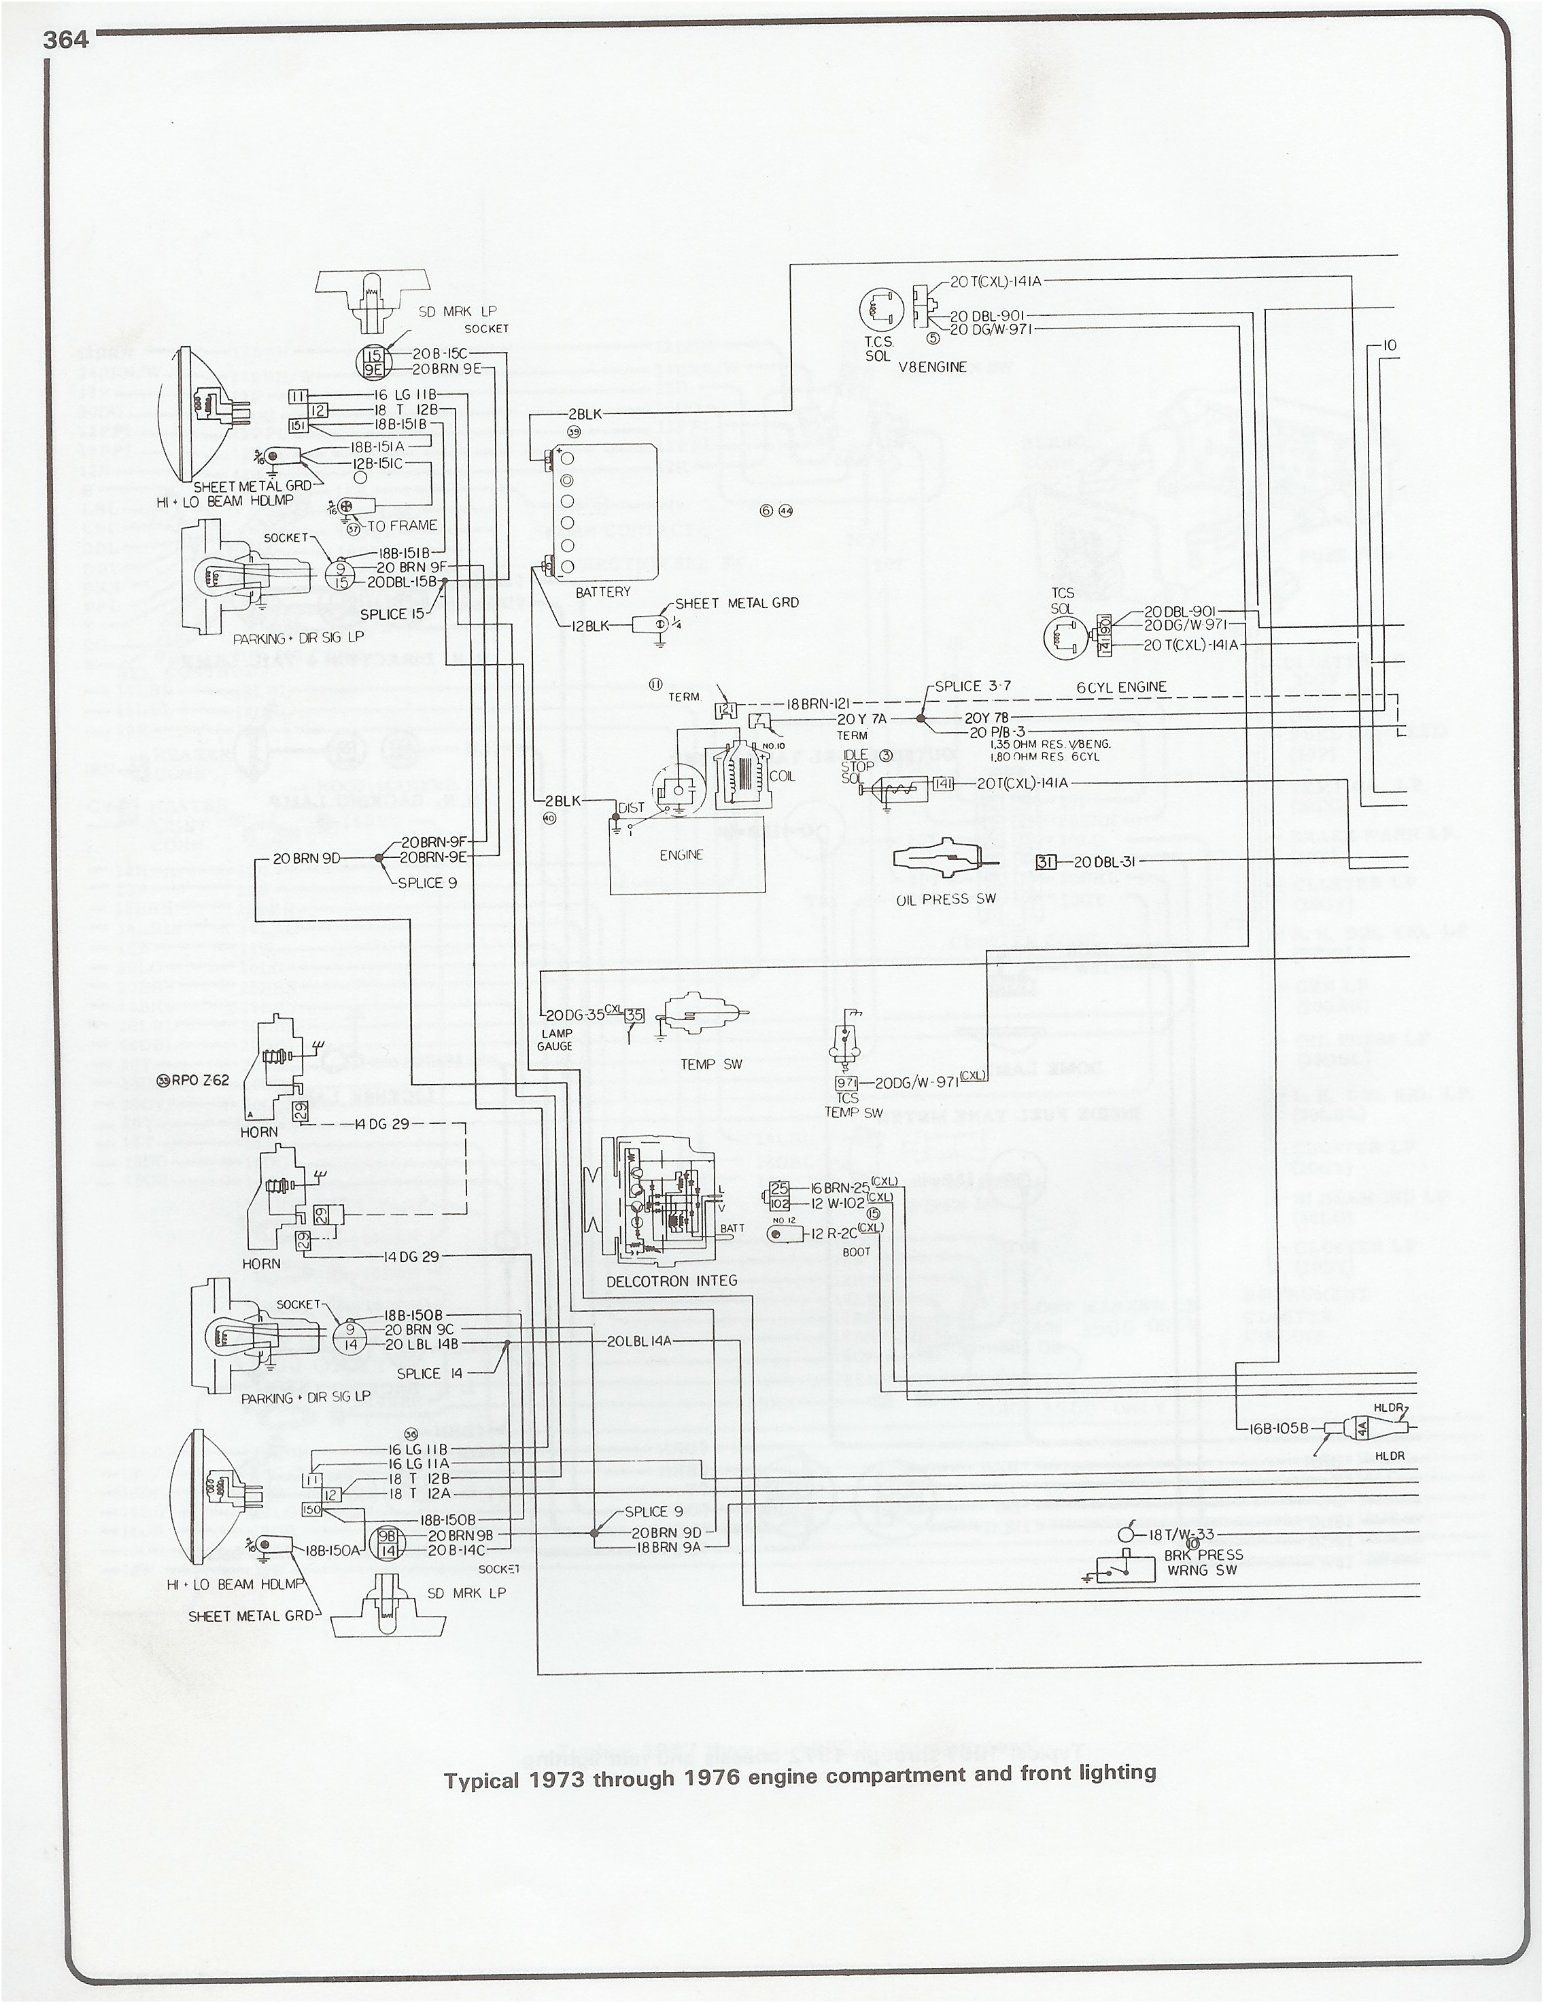 small resolution of wiring diagram 1973 1976 chevy pickup chevy wiring diagram diagrams wiring chevy79k10 76 chevy wiring diagram